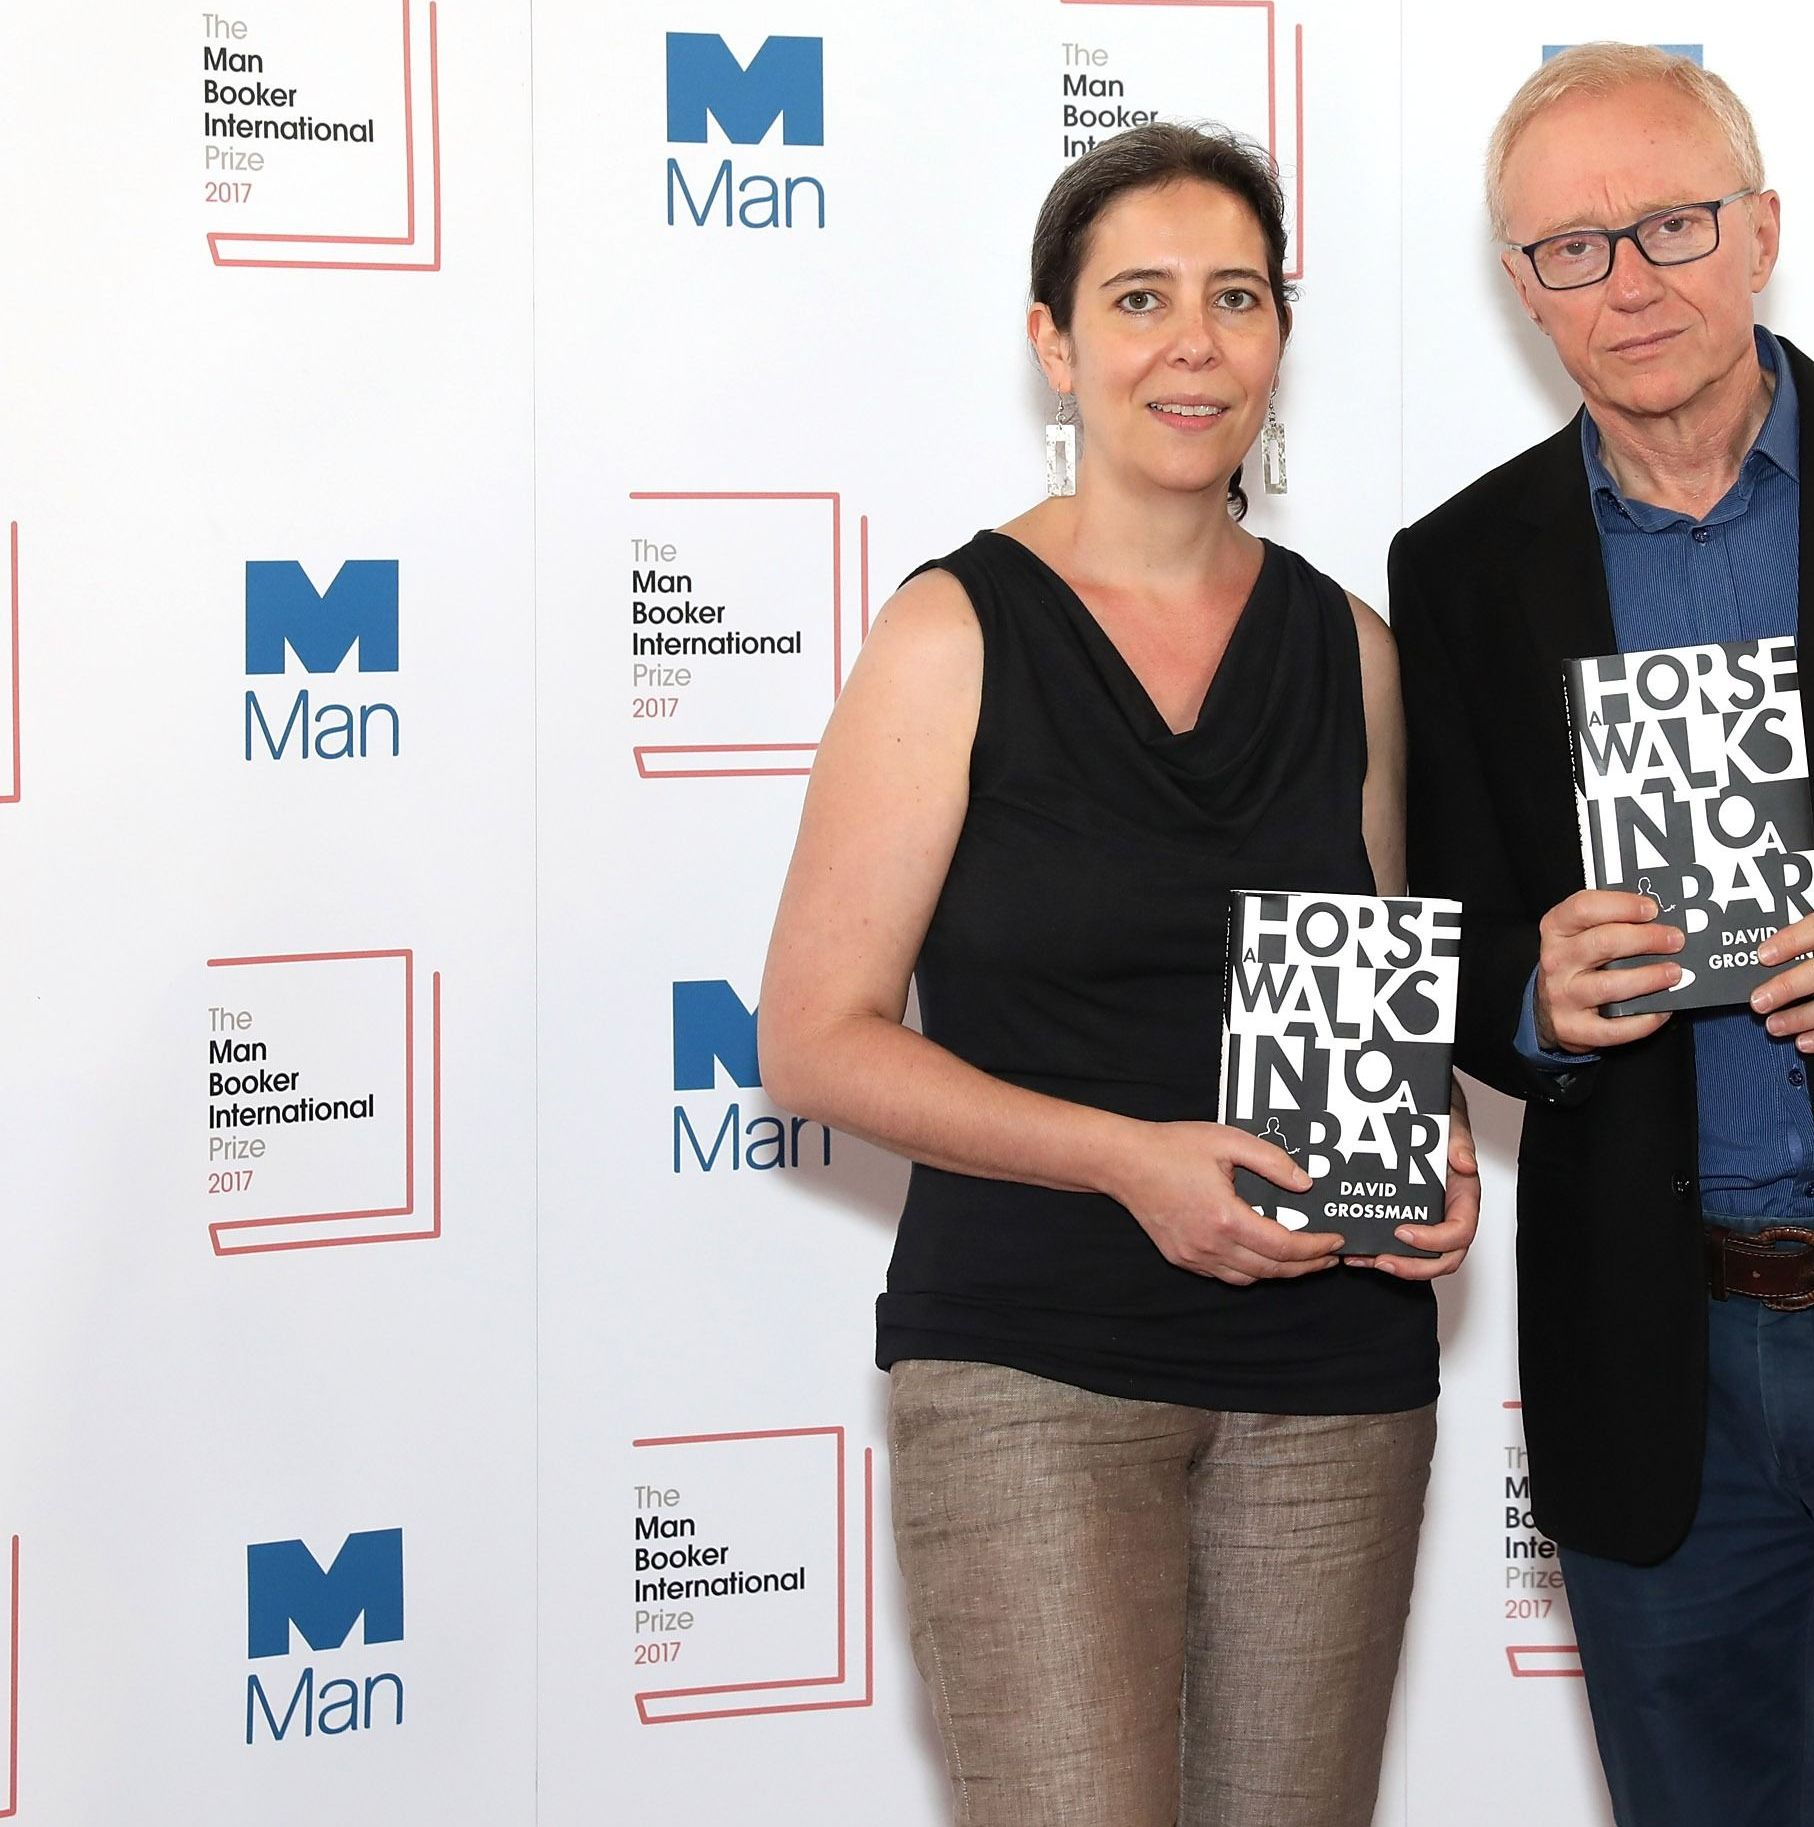 Author David Grossman wins Man Booker International Prize